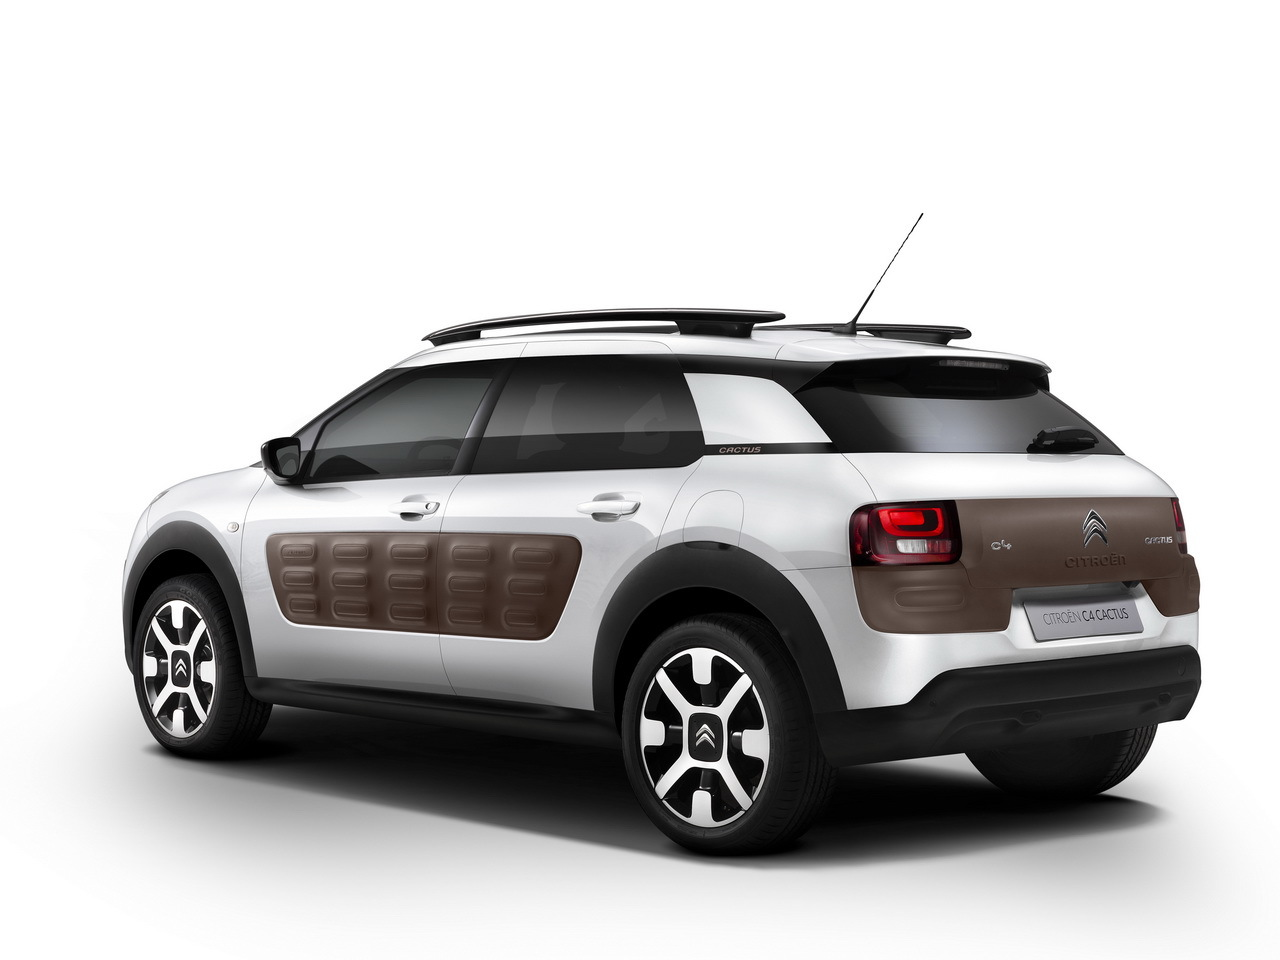 citroen c4 cactus la nouvelle citro n c4 cactus pique les yeux photos officielles salon de. Black Bedroom Furniture Sets. Home Design Ideas